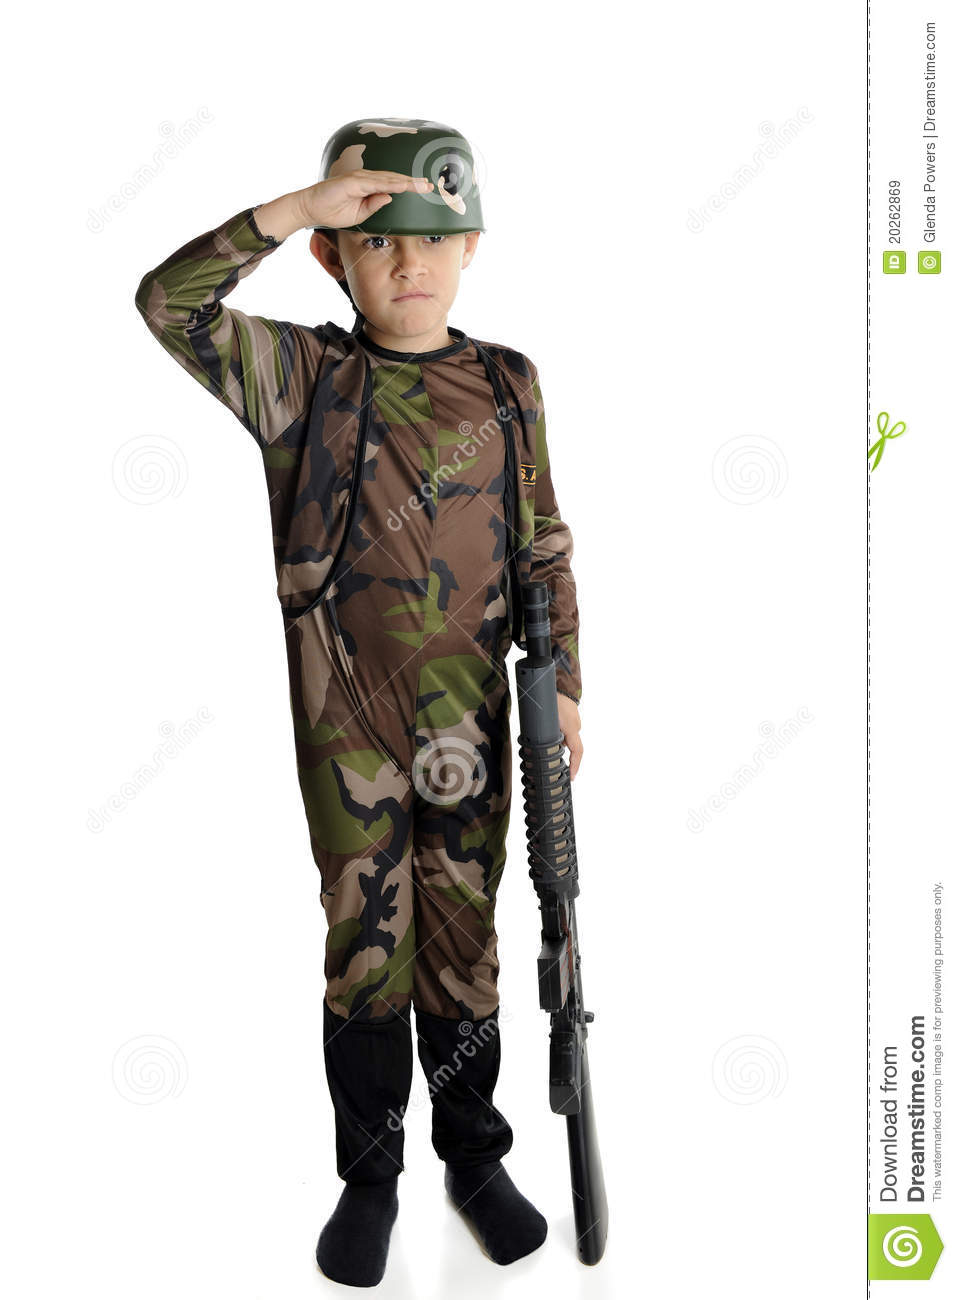 Military Salute Stock Image Image Of White Soldier